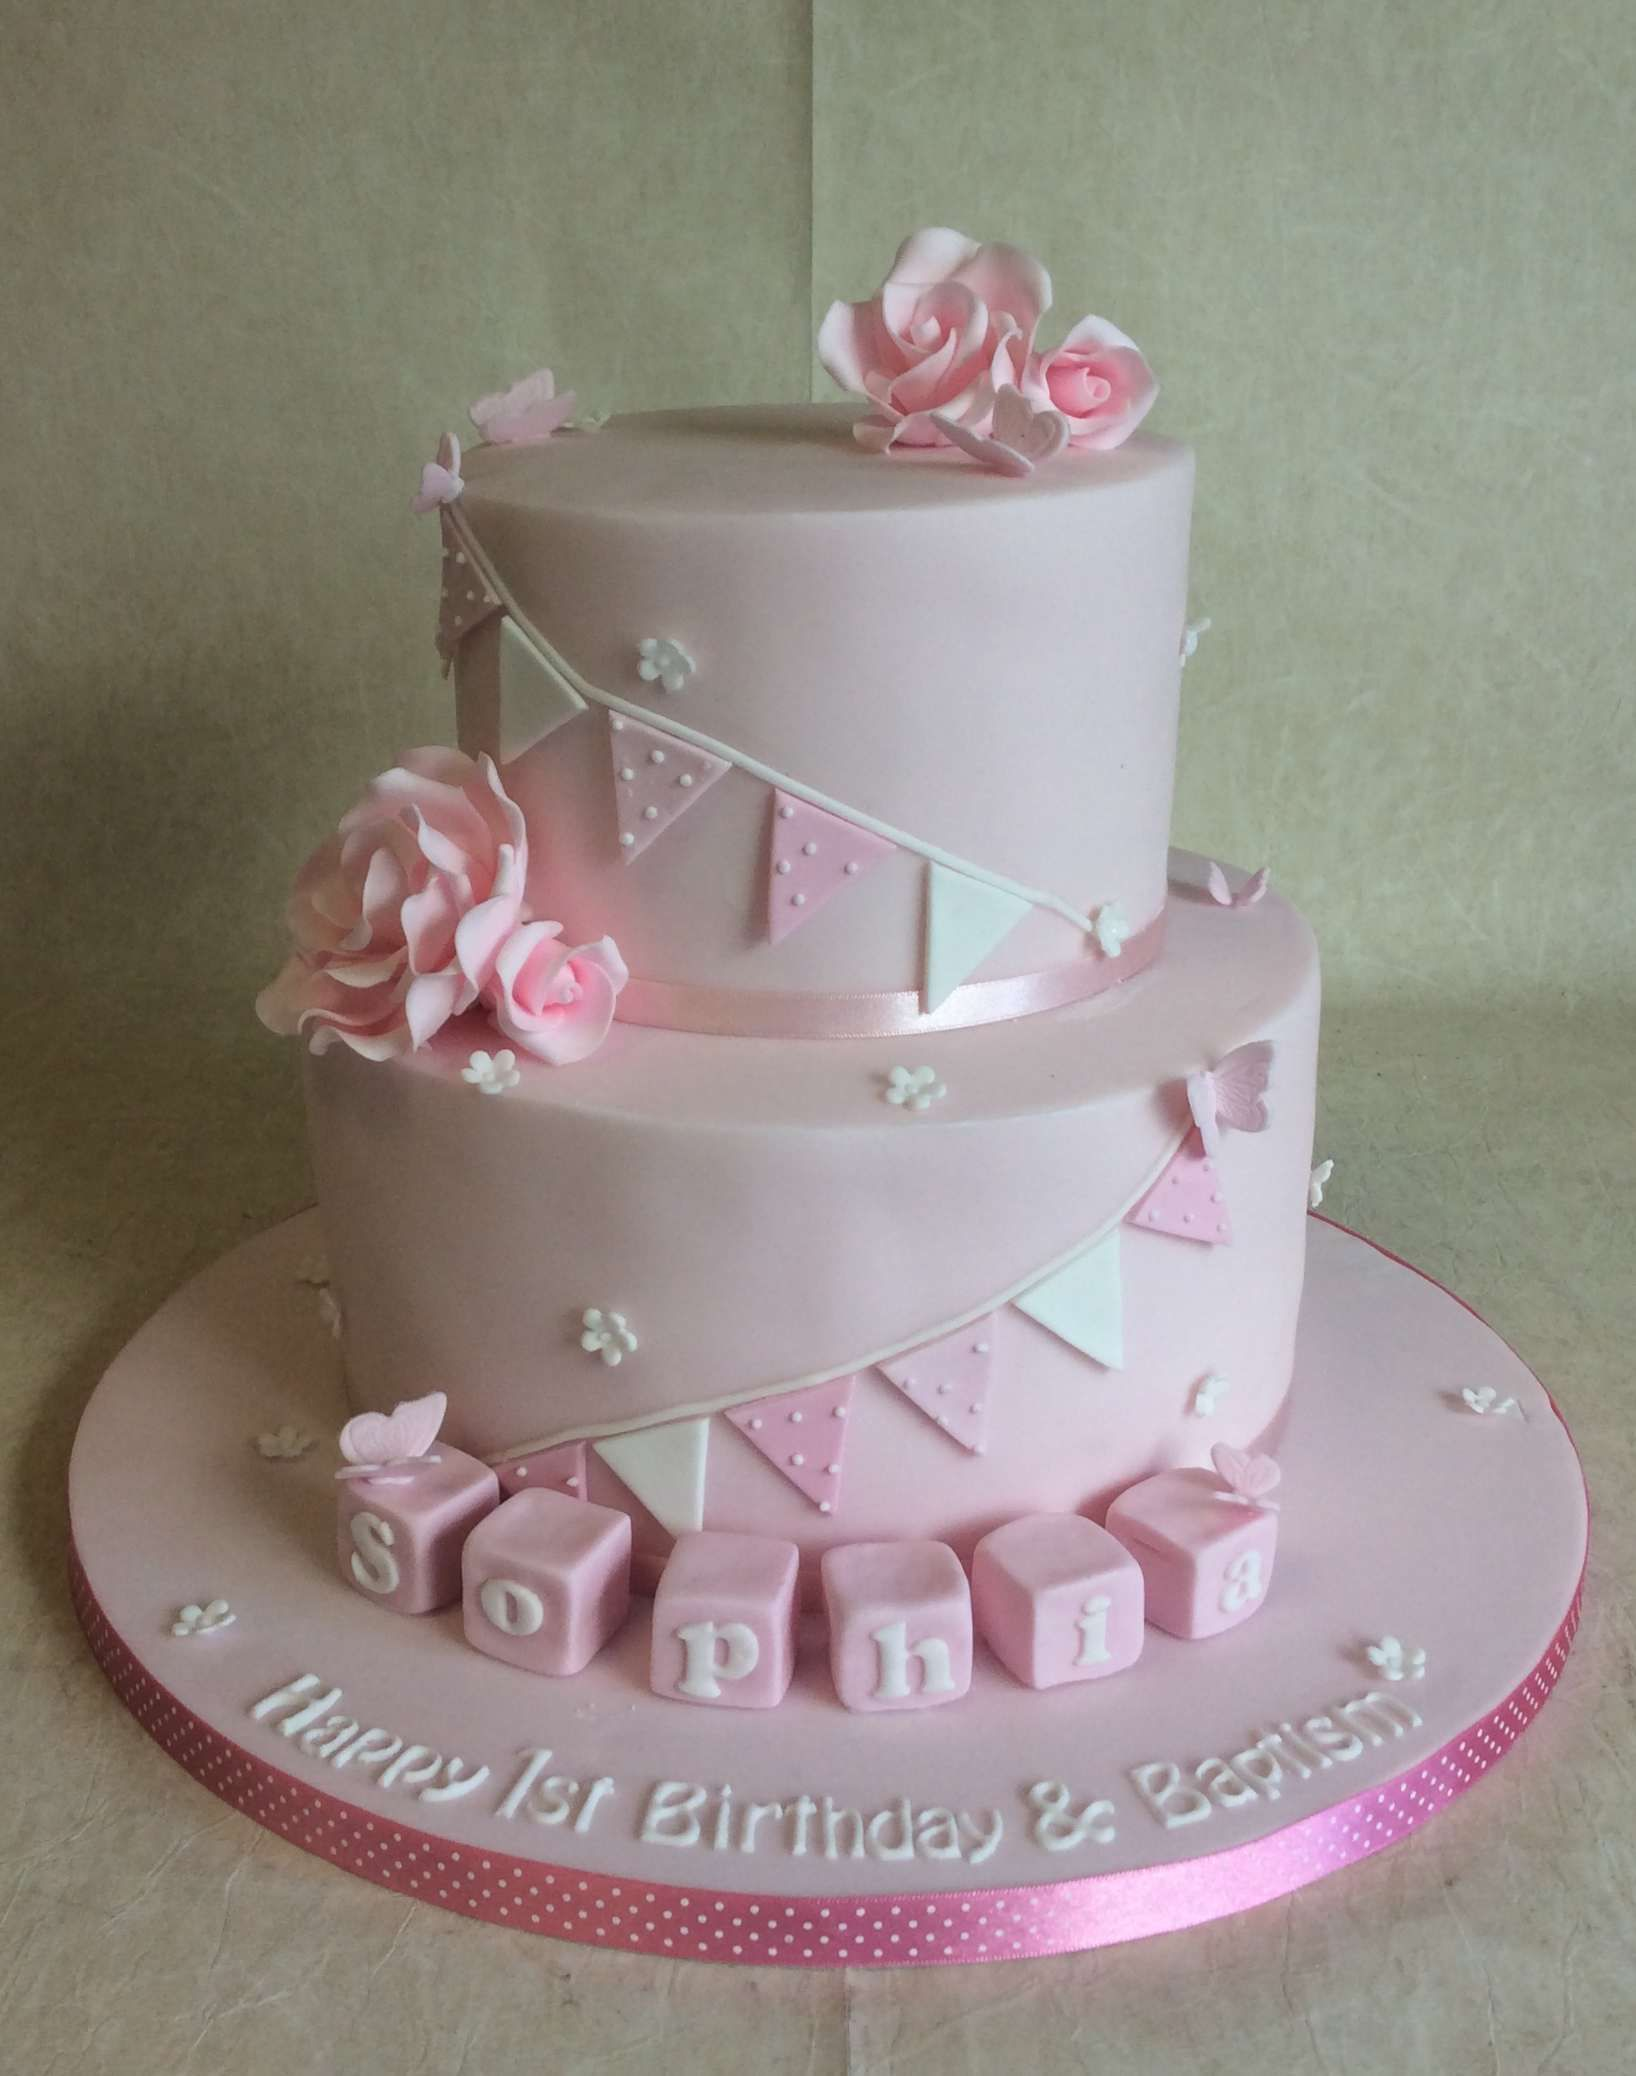 2 Tier Joint Christening 1st Birthday Cake With Bunting Blocks